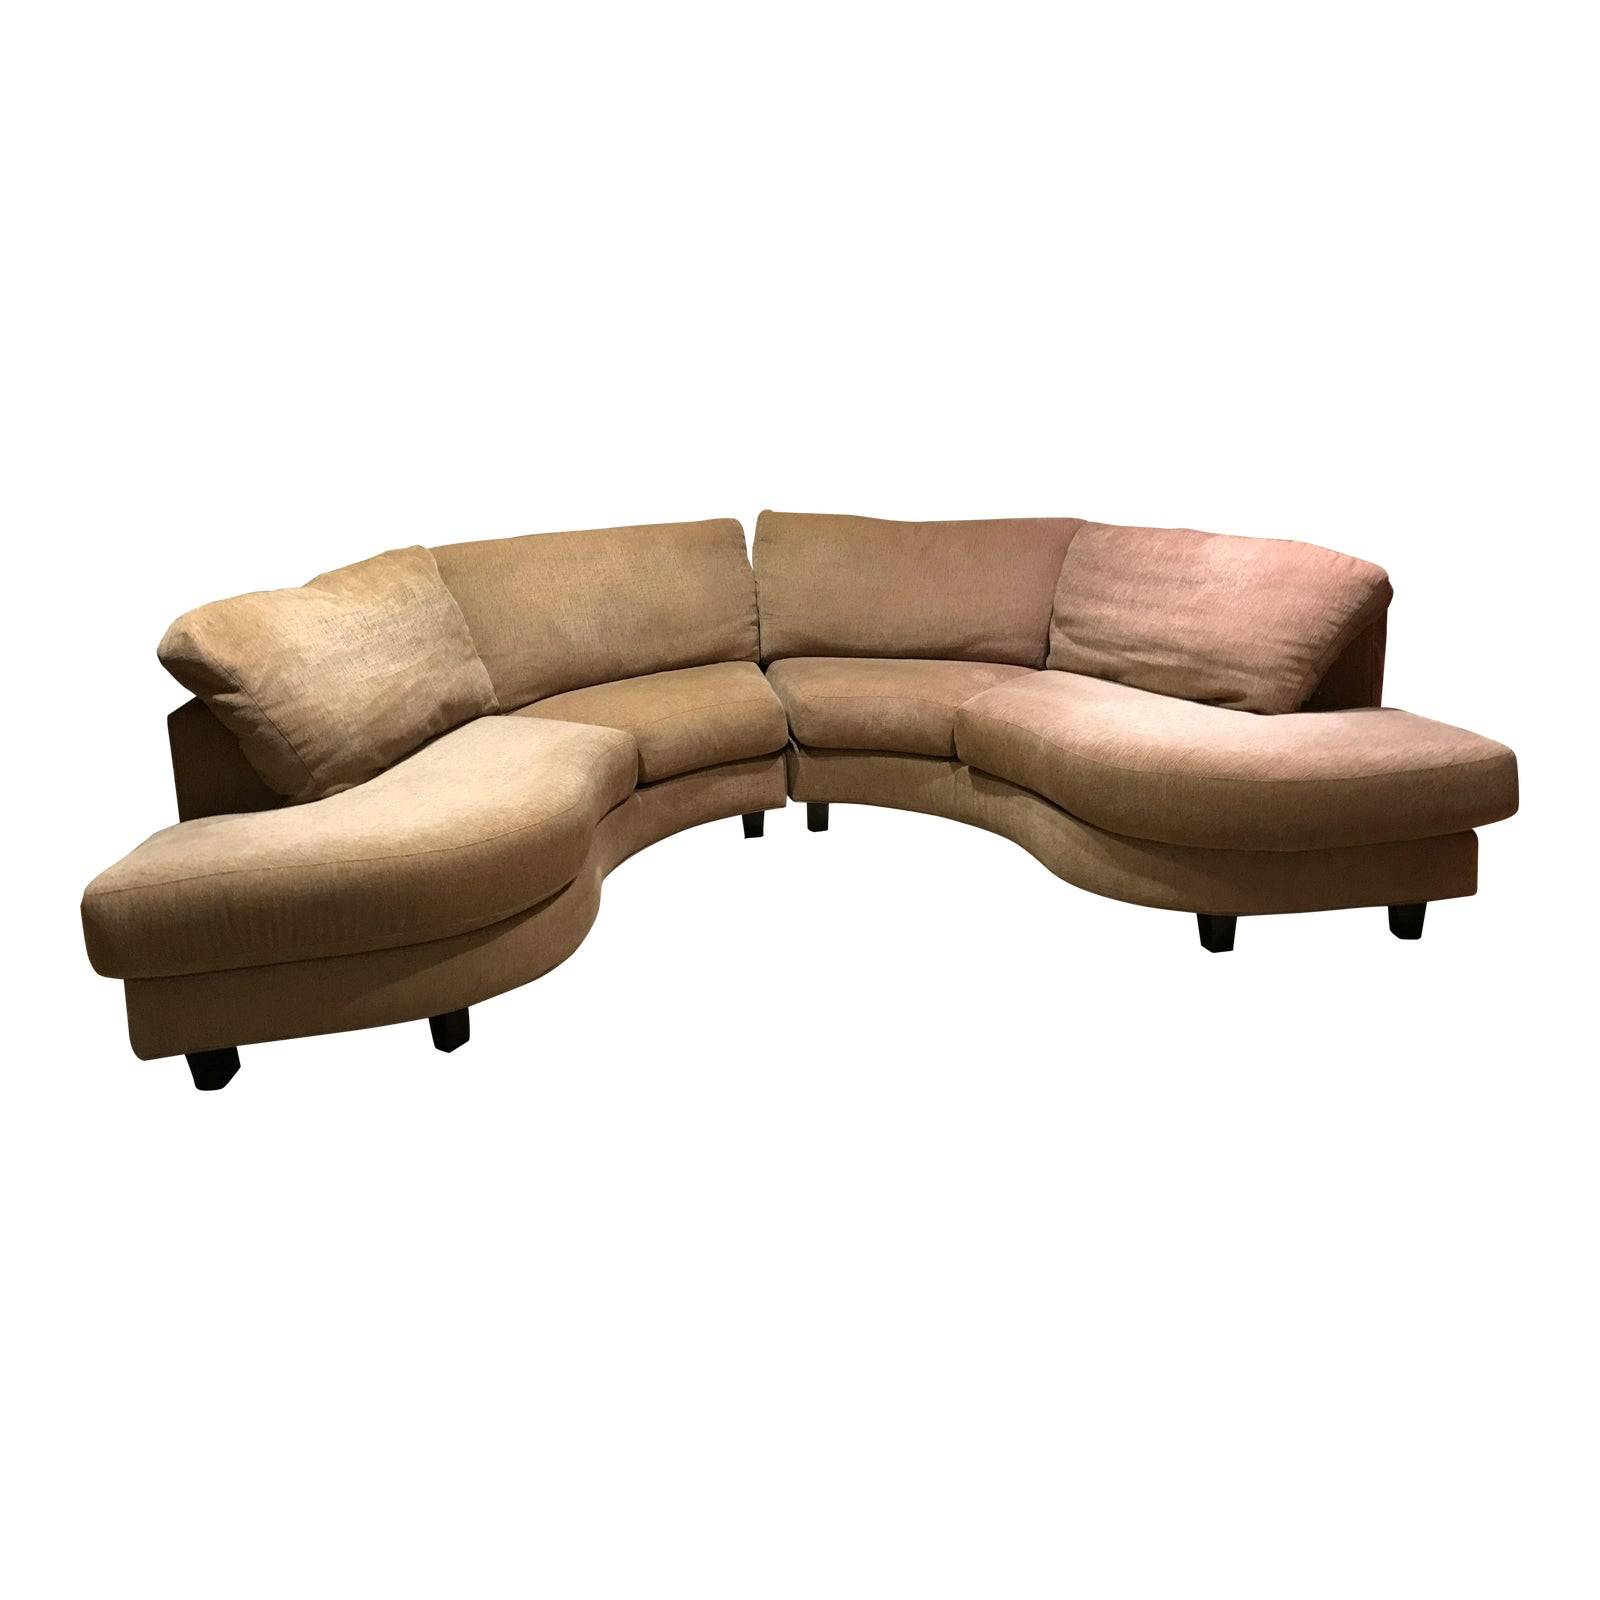 Leather Sofas For Sale In Northern Ireland: Thayer Coggin Sectional Sofa